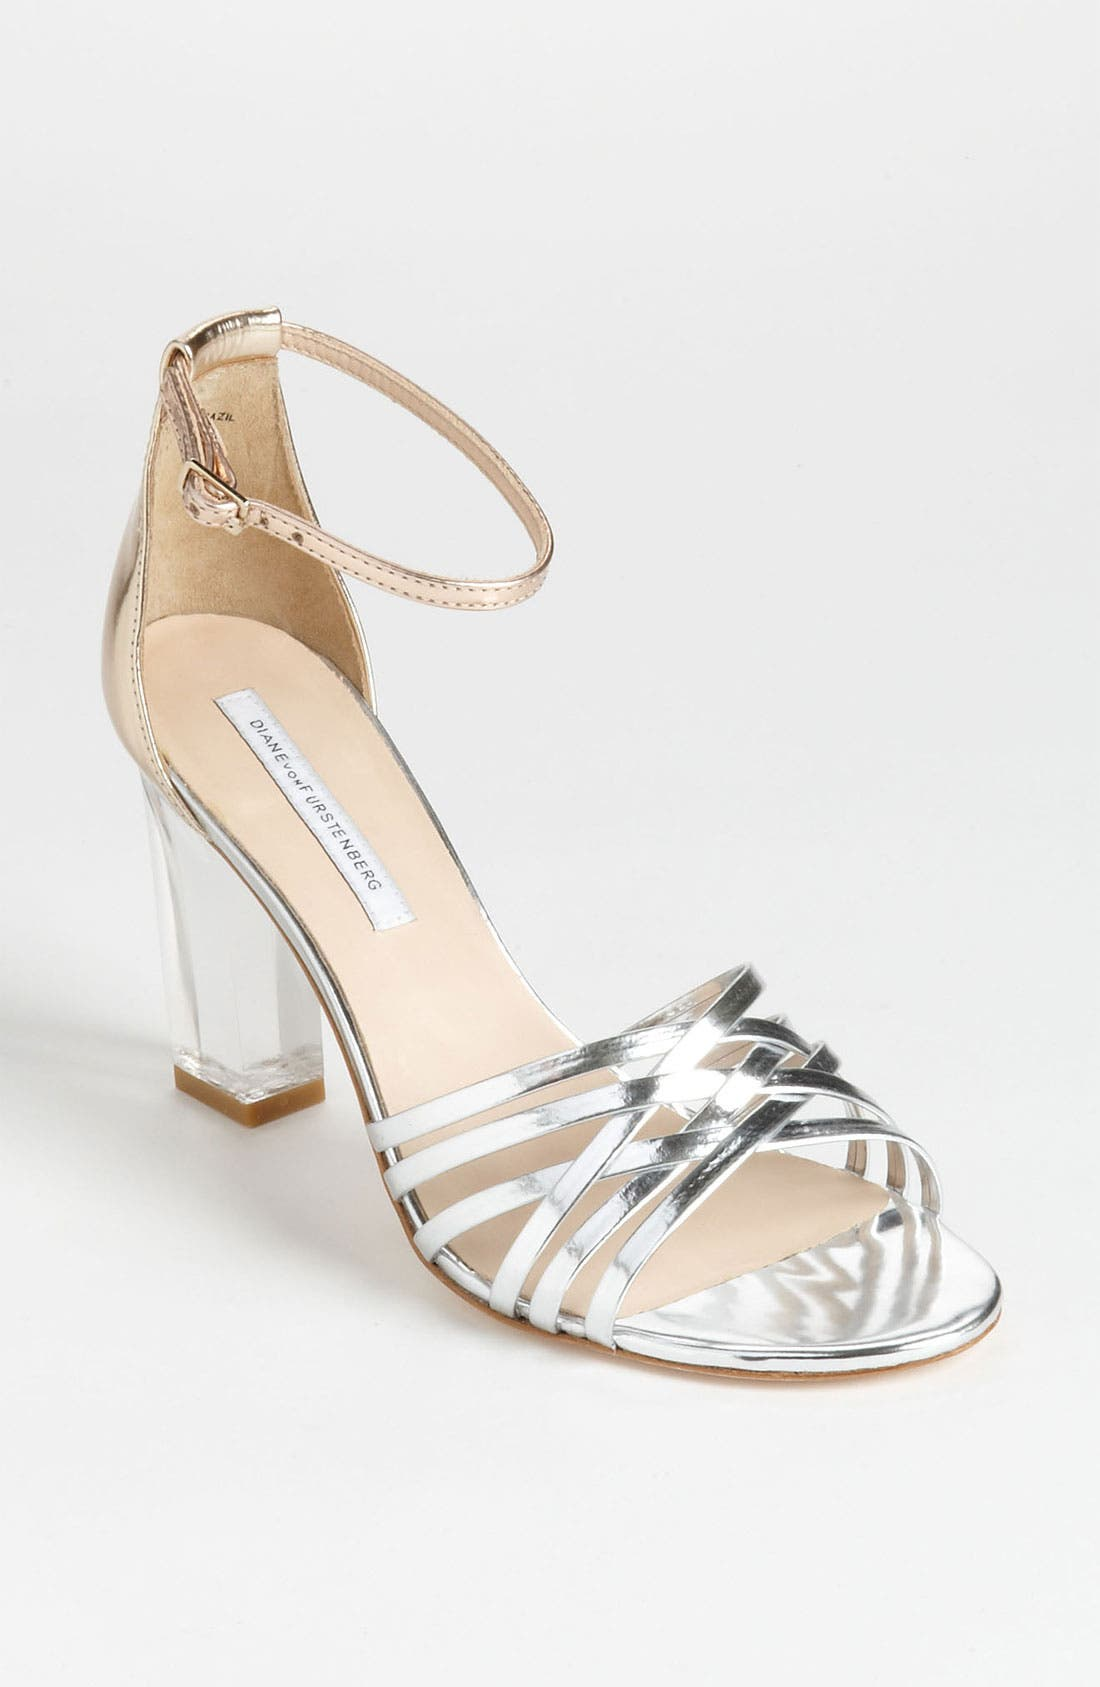 Alternate Image 1 Selected - Diane von Furstenberg 'Priene' Sandal (Online Only)